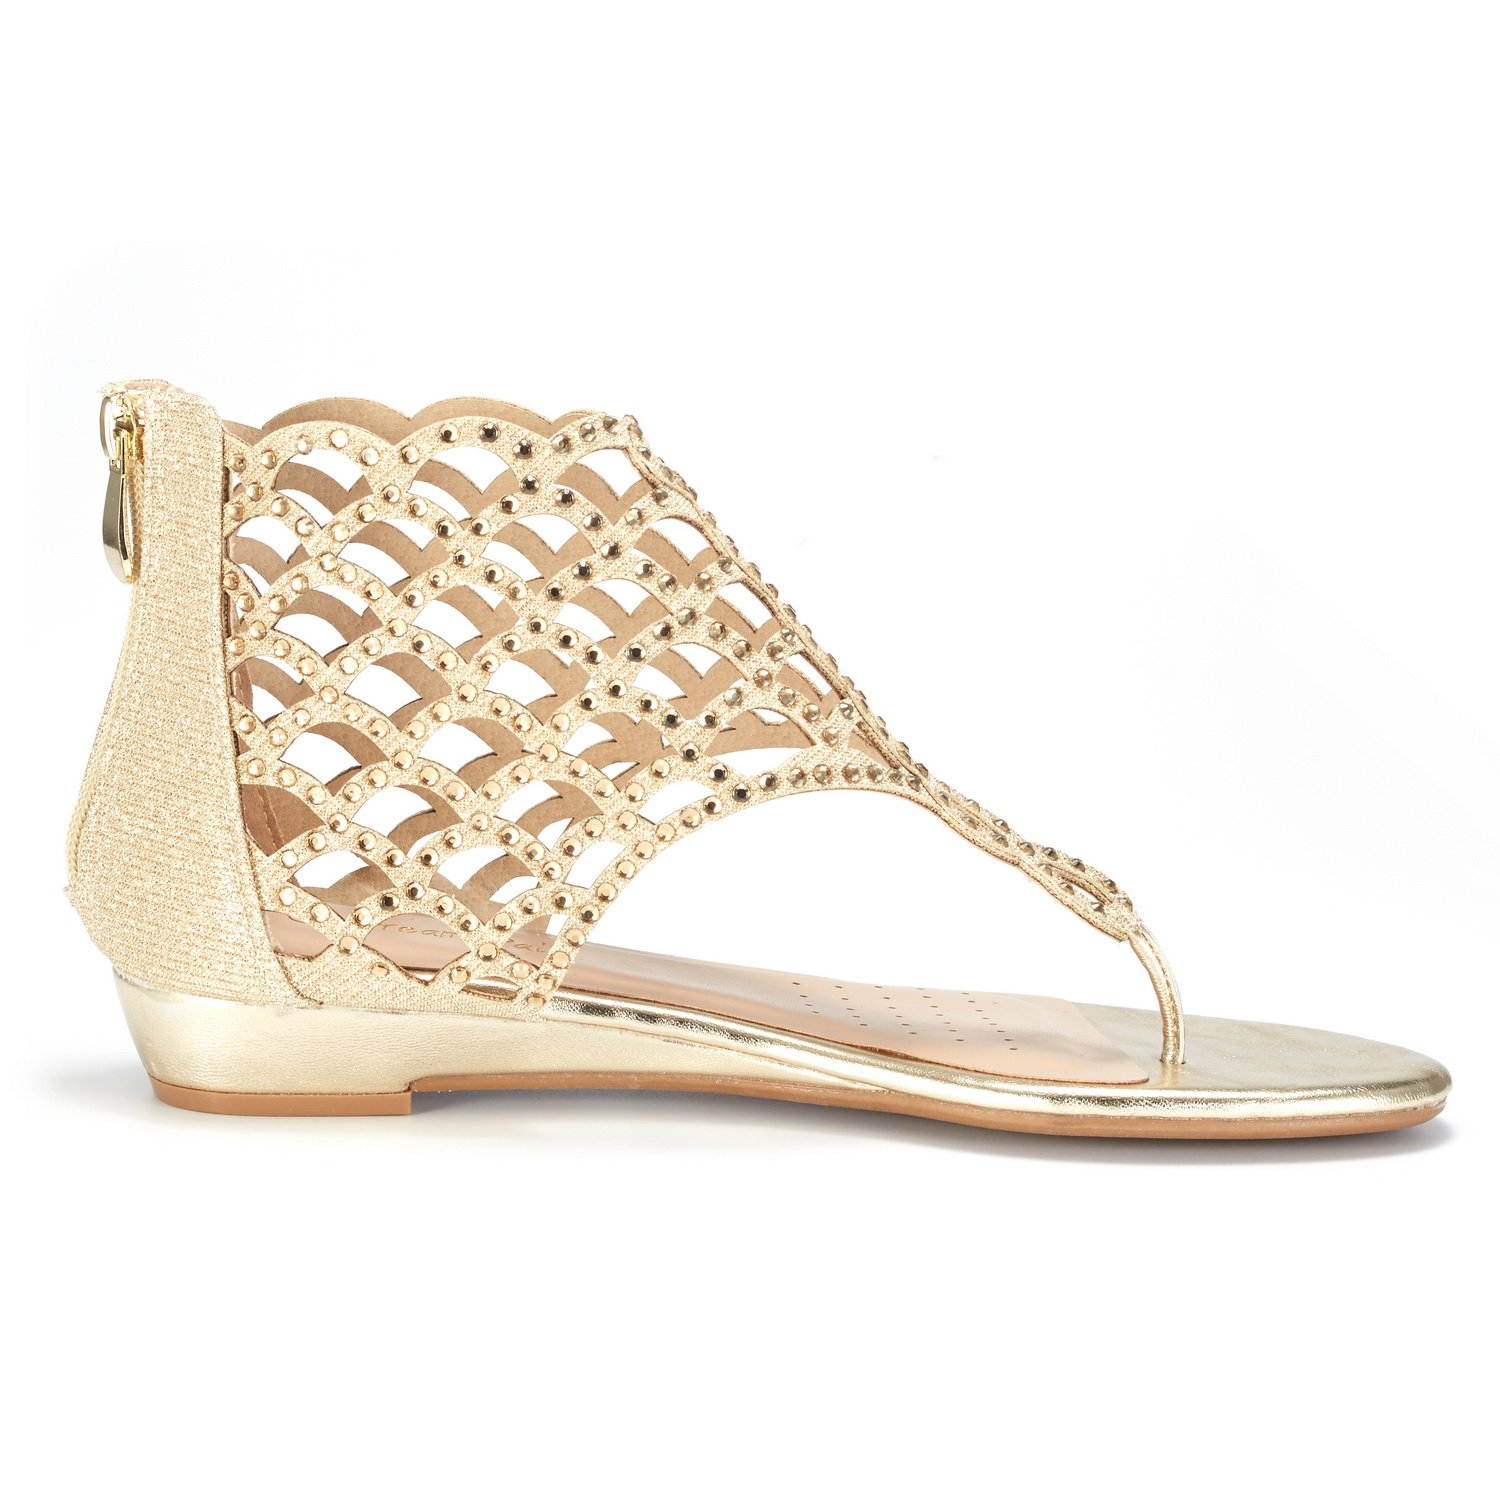 8160ab253 DREAM PAIRS Women s Jewel Rhinestones Design Ankle High Flat Sandals larger  image